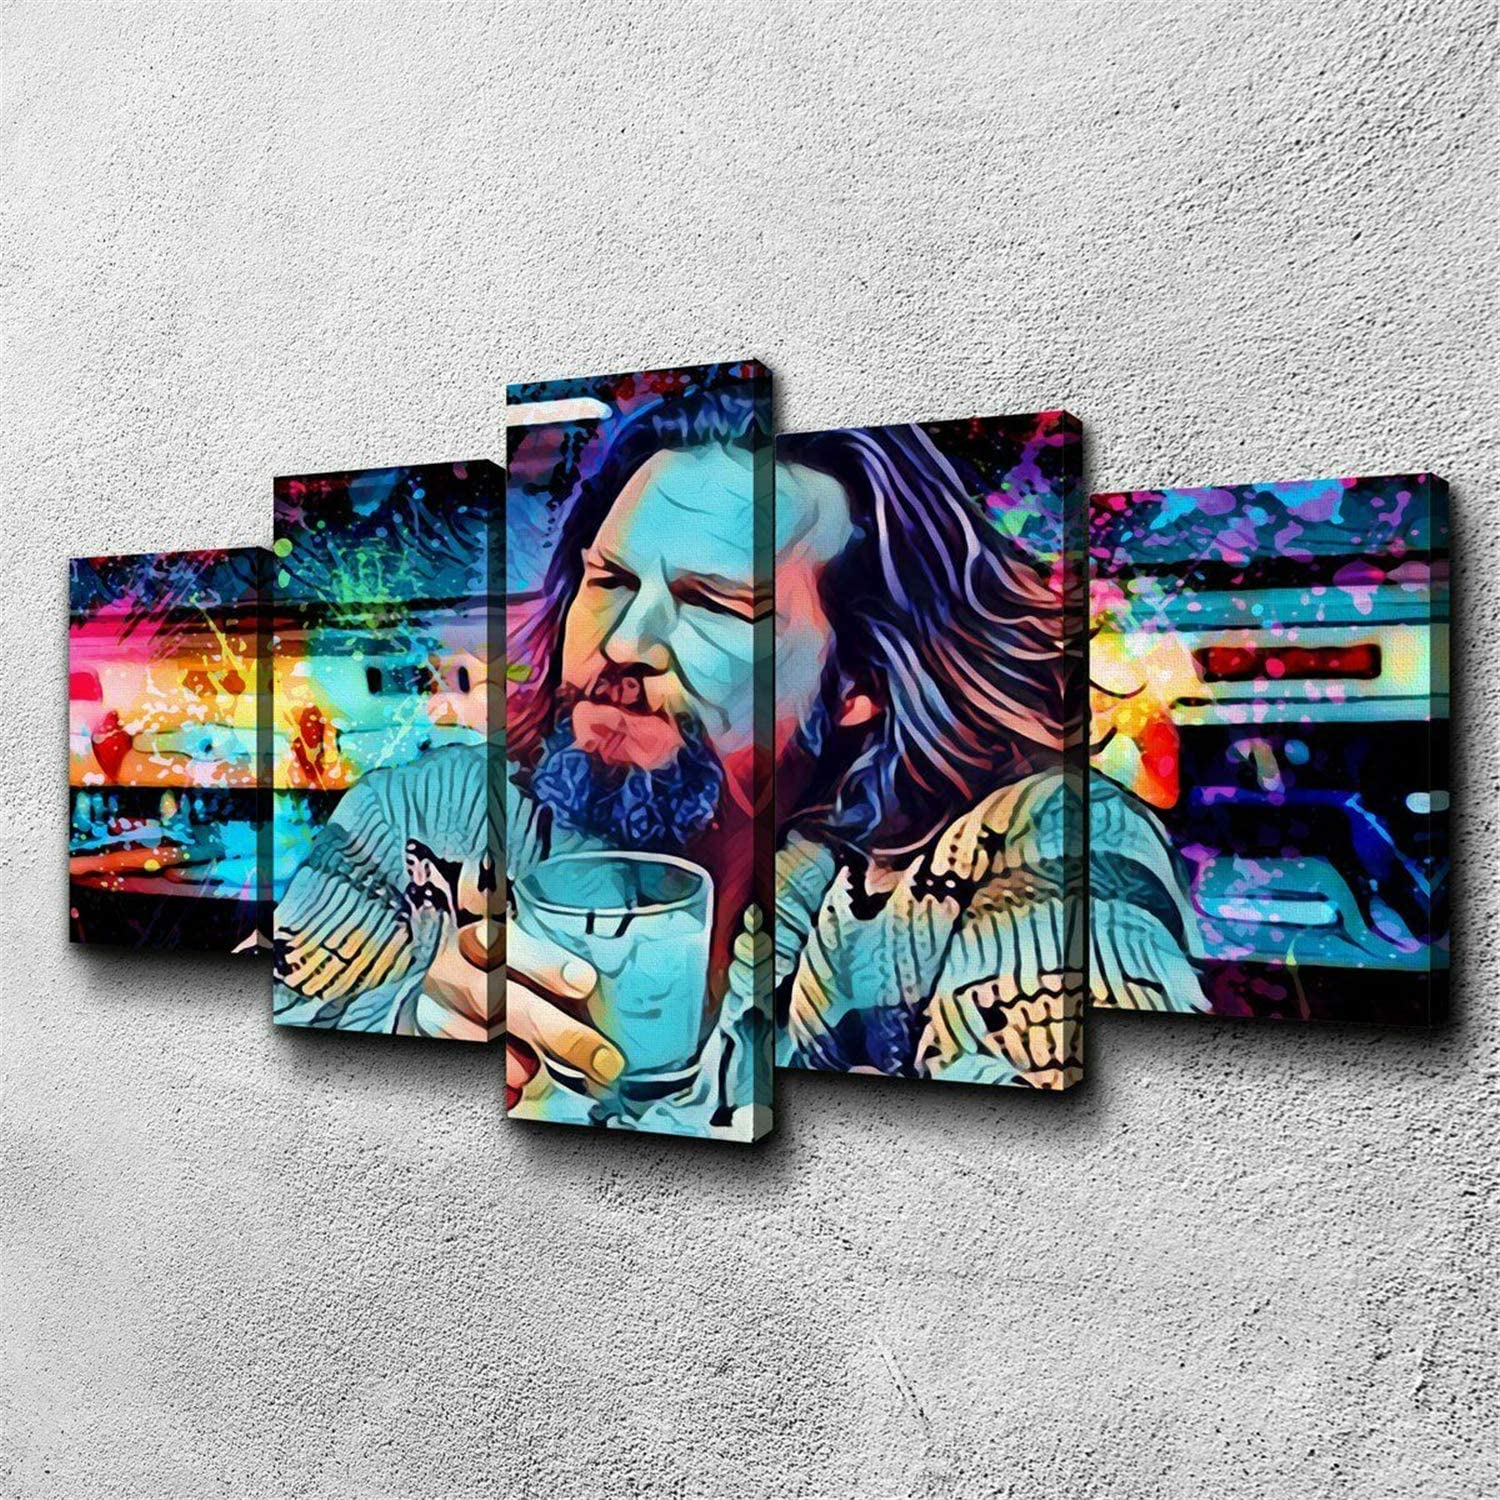 sold out 5 Weekly update Piece Canvas Painting The Big Poster Prints Fram Lebowski Dude